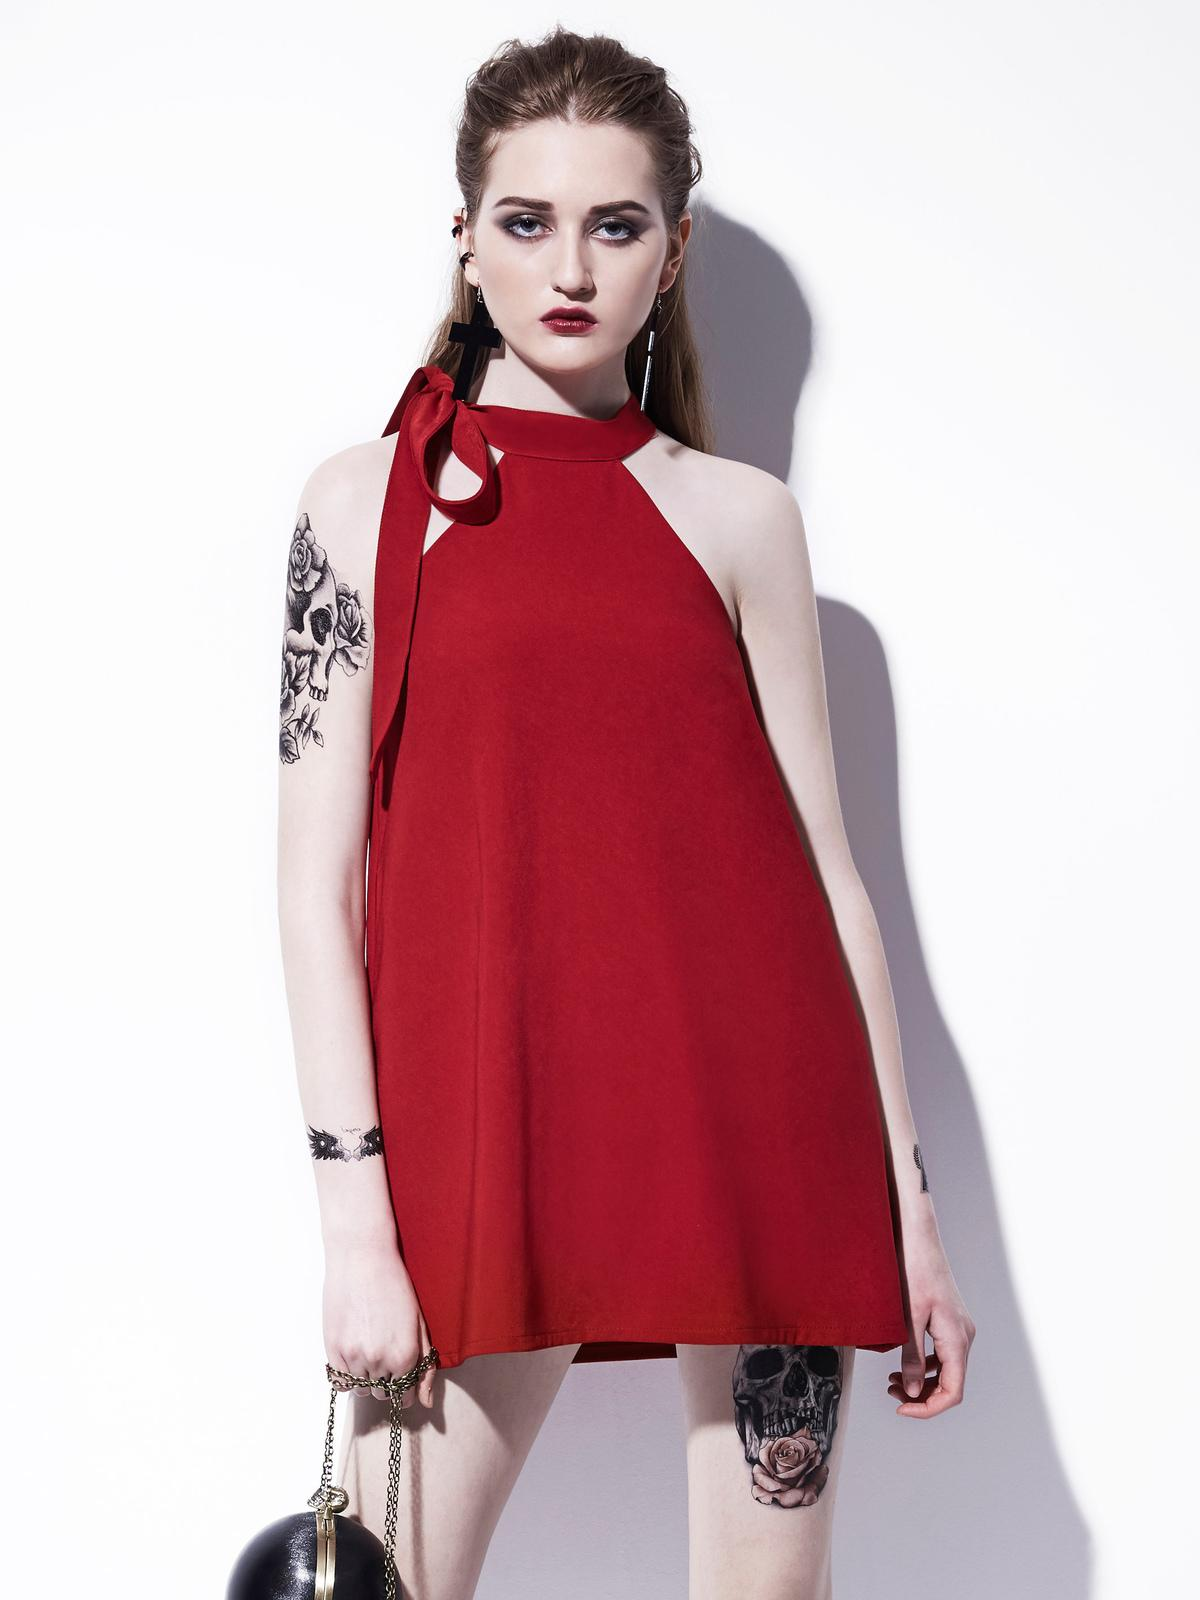 d2489043aba Gothic Mini Sleeveless Dress Red Women Summer Halter Sexy Casual Sweet  Pocket Lace Up Loose Pockets Fashion Goth Dresses Shopping Dress Lace  Sundress From ...